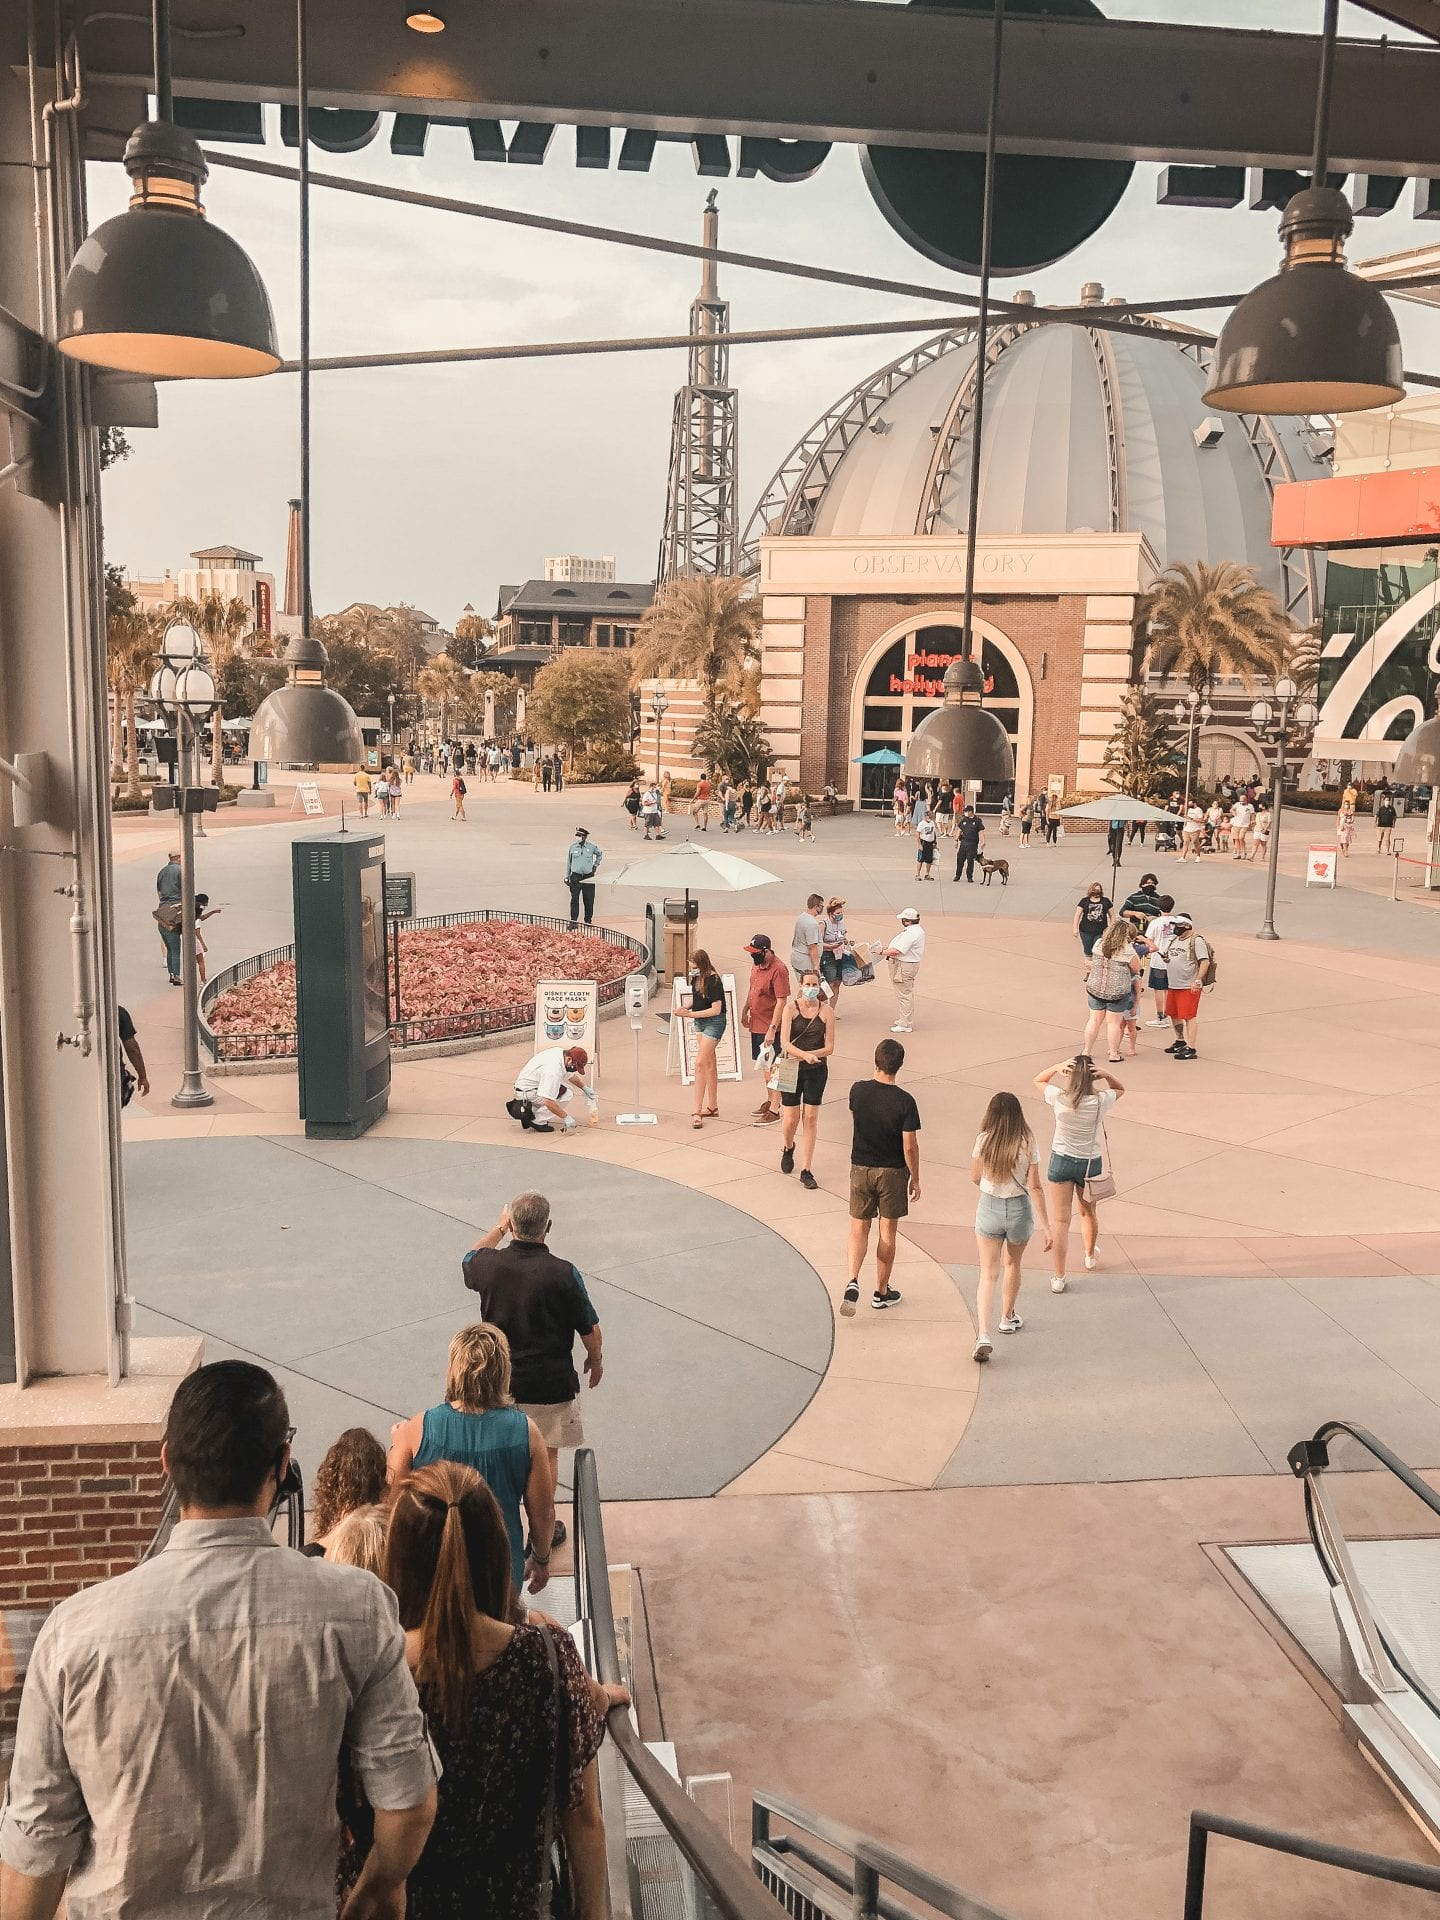 Disney Springs crowds during COVID-19